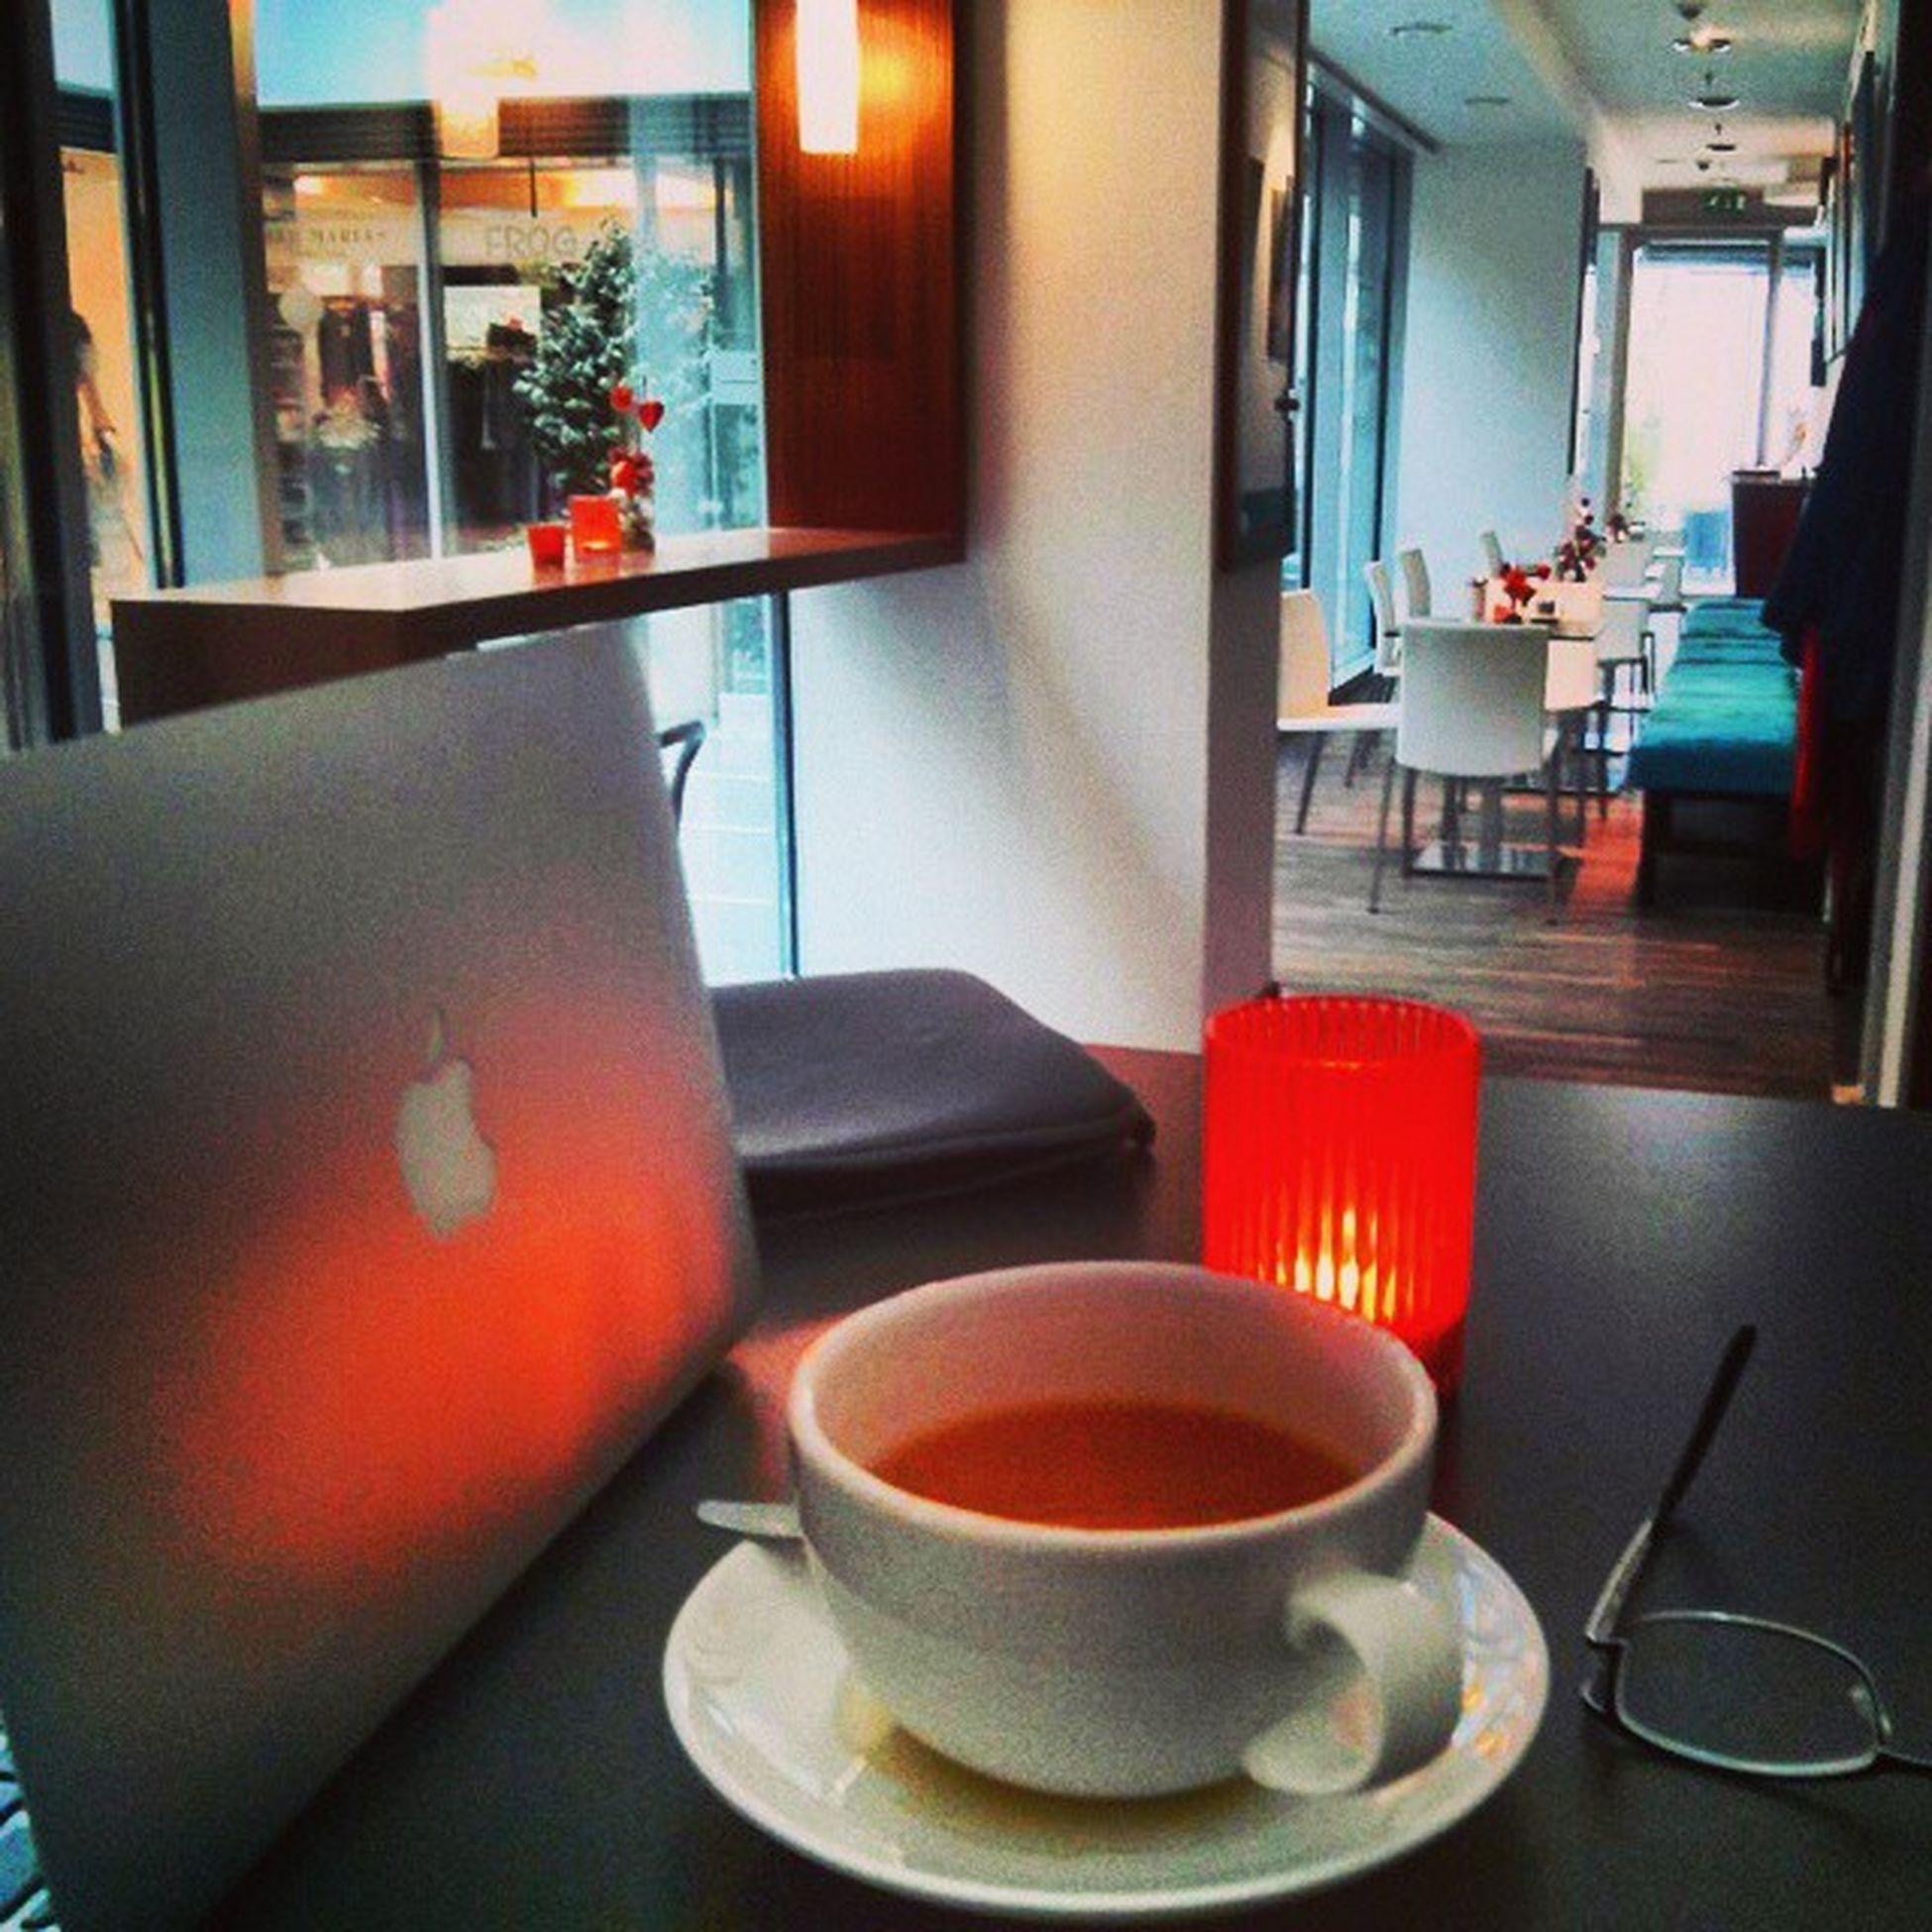 Global office setting - Green Tea + MacBook Air + WiFi + standing table Remotework Internet Webdev Mobilephotography appdev